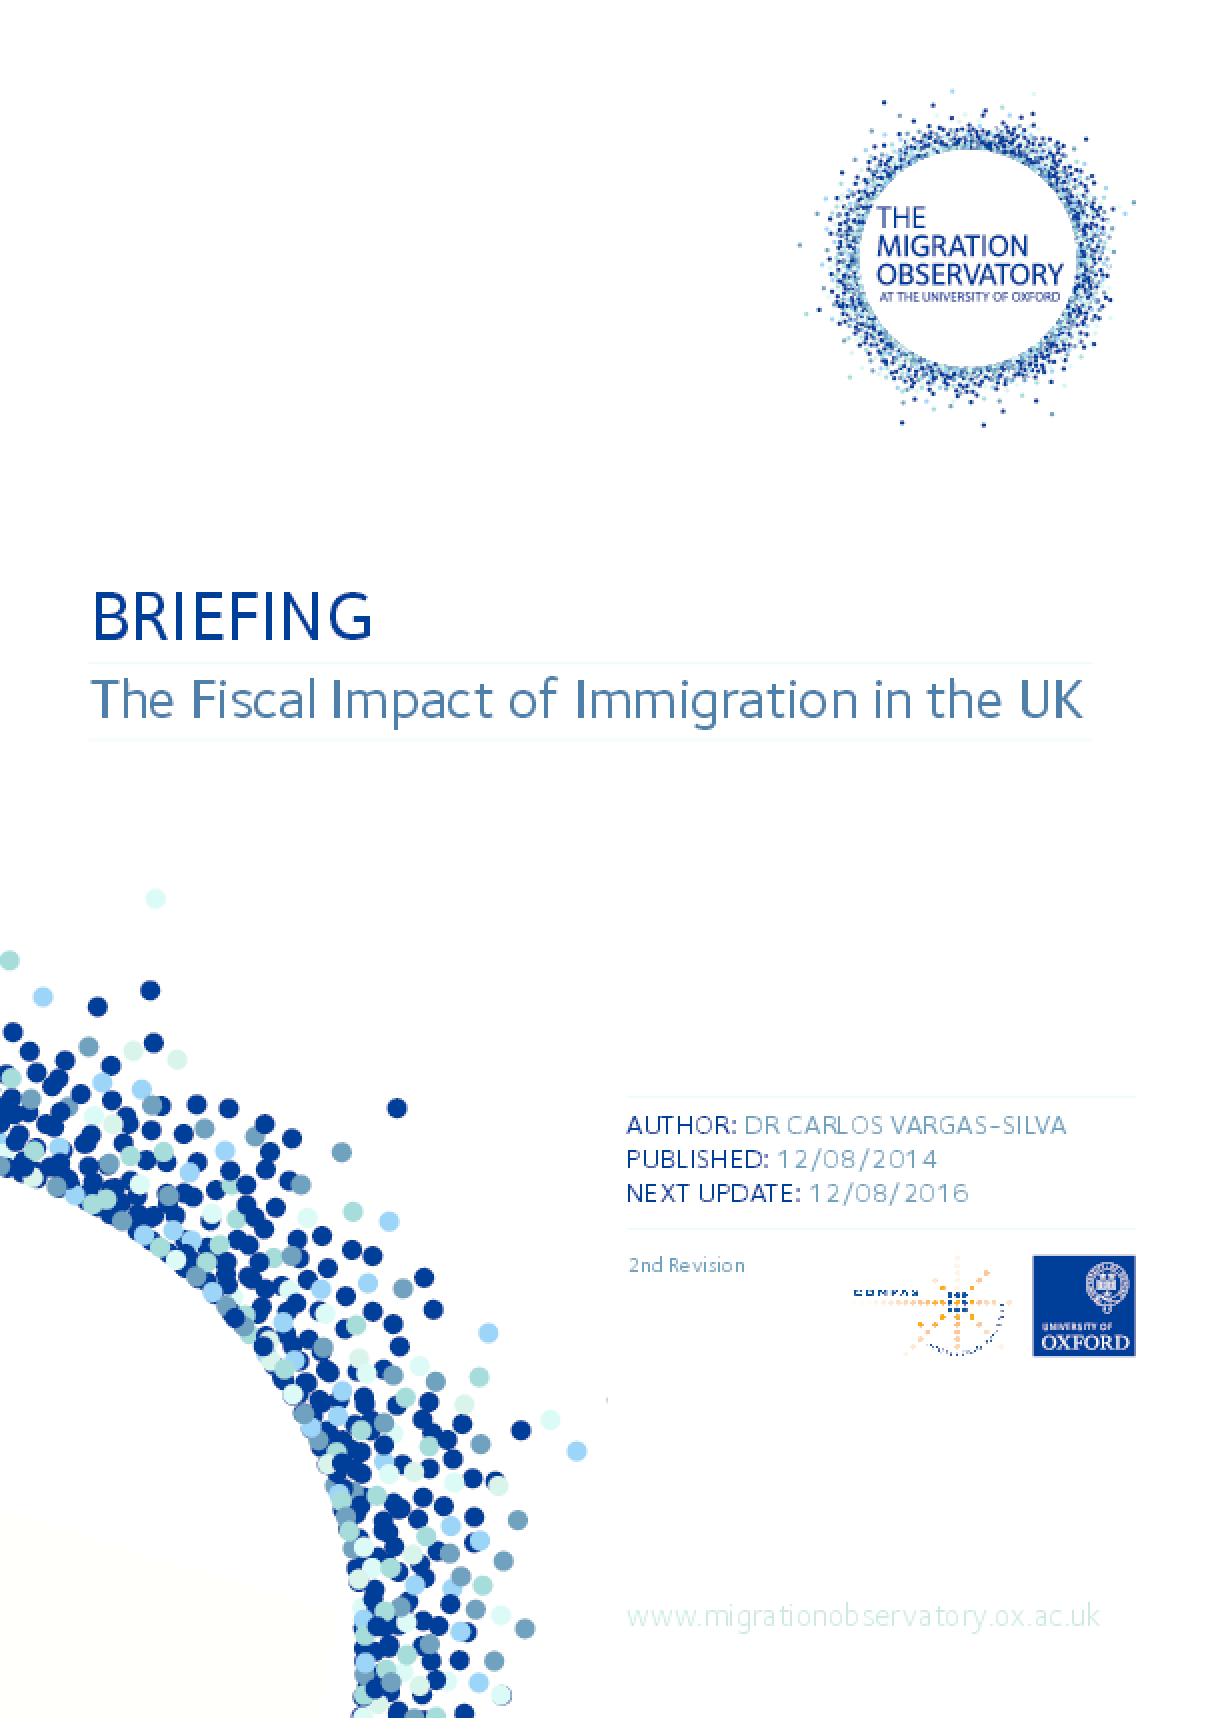 The Fiscal Impact of Immigration in the UK